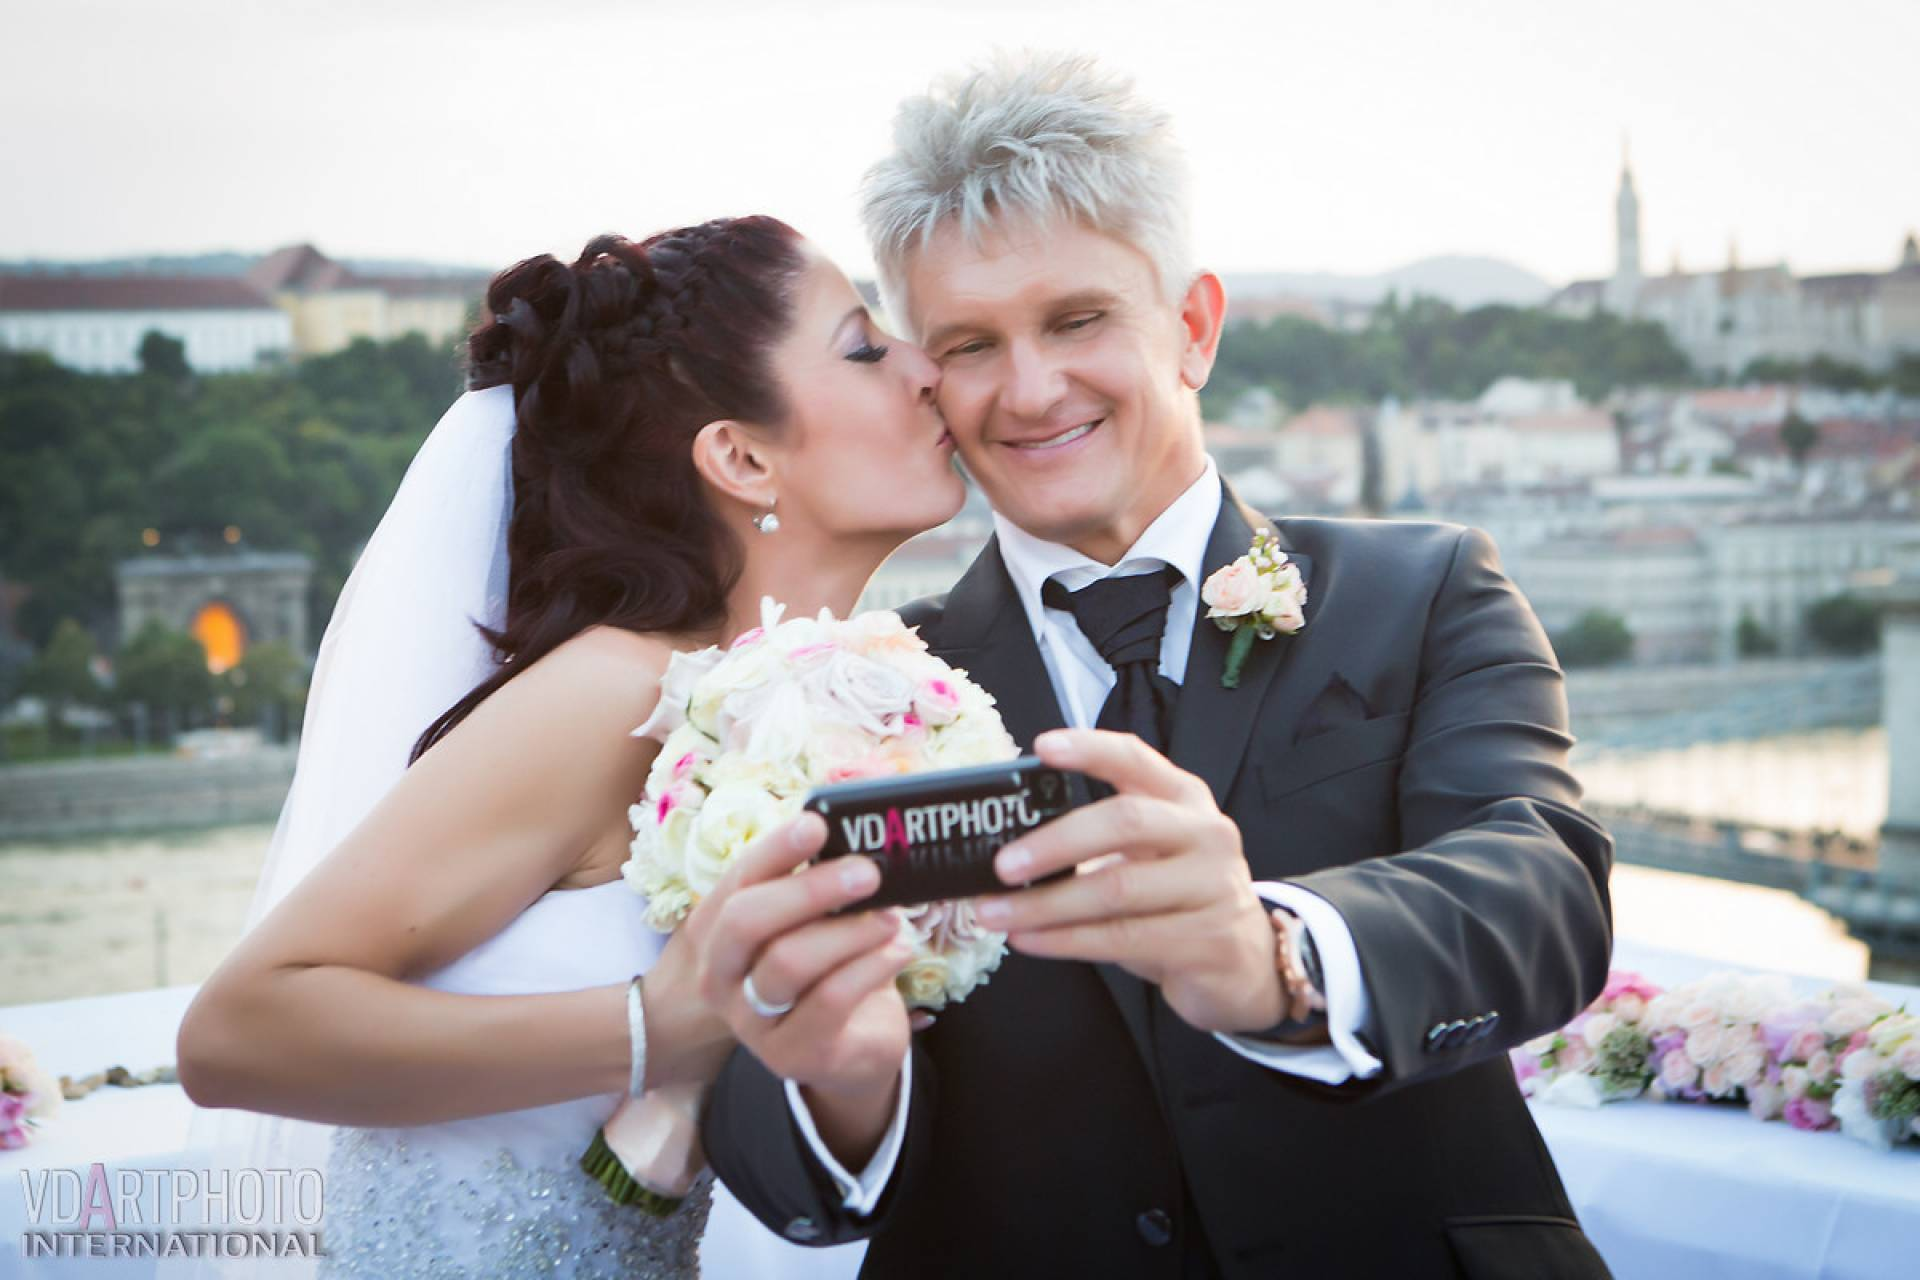 201509/Ani_Gyuri_wedding_retus0077_jpg.jpg -